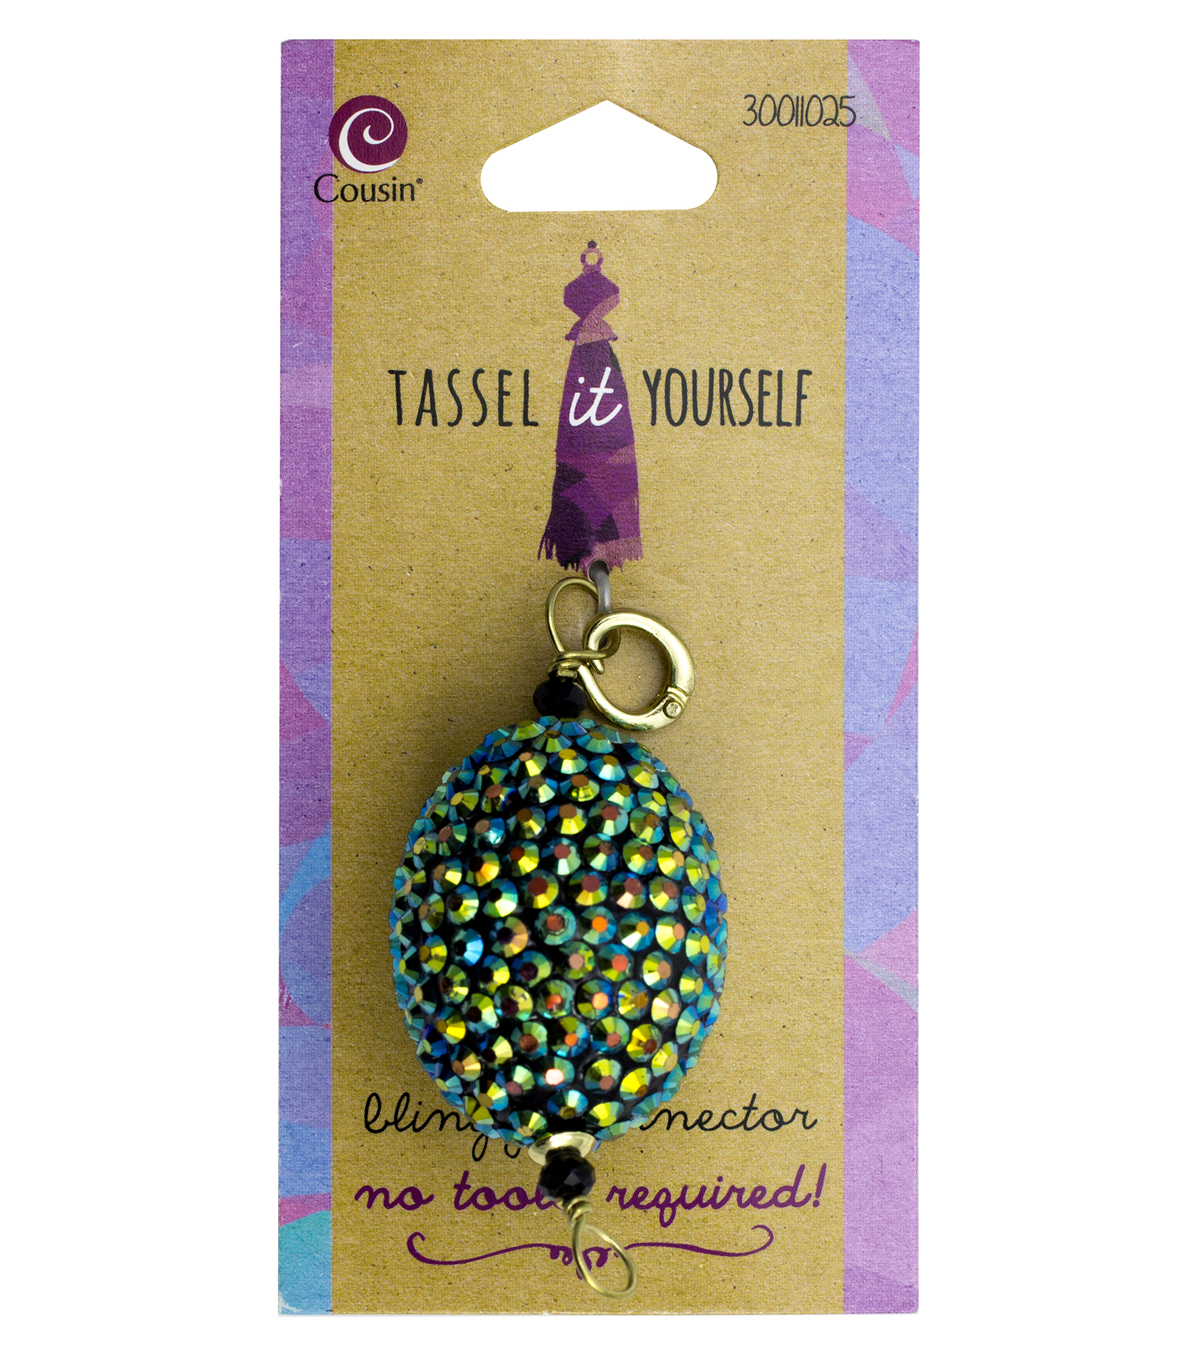 Cousin® Tassel It Yourself Oval Chamballa Connector-Green & Blue